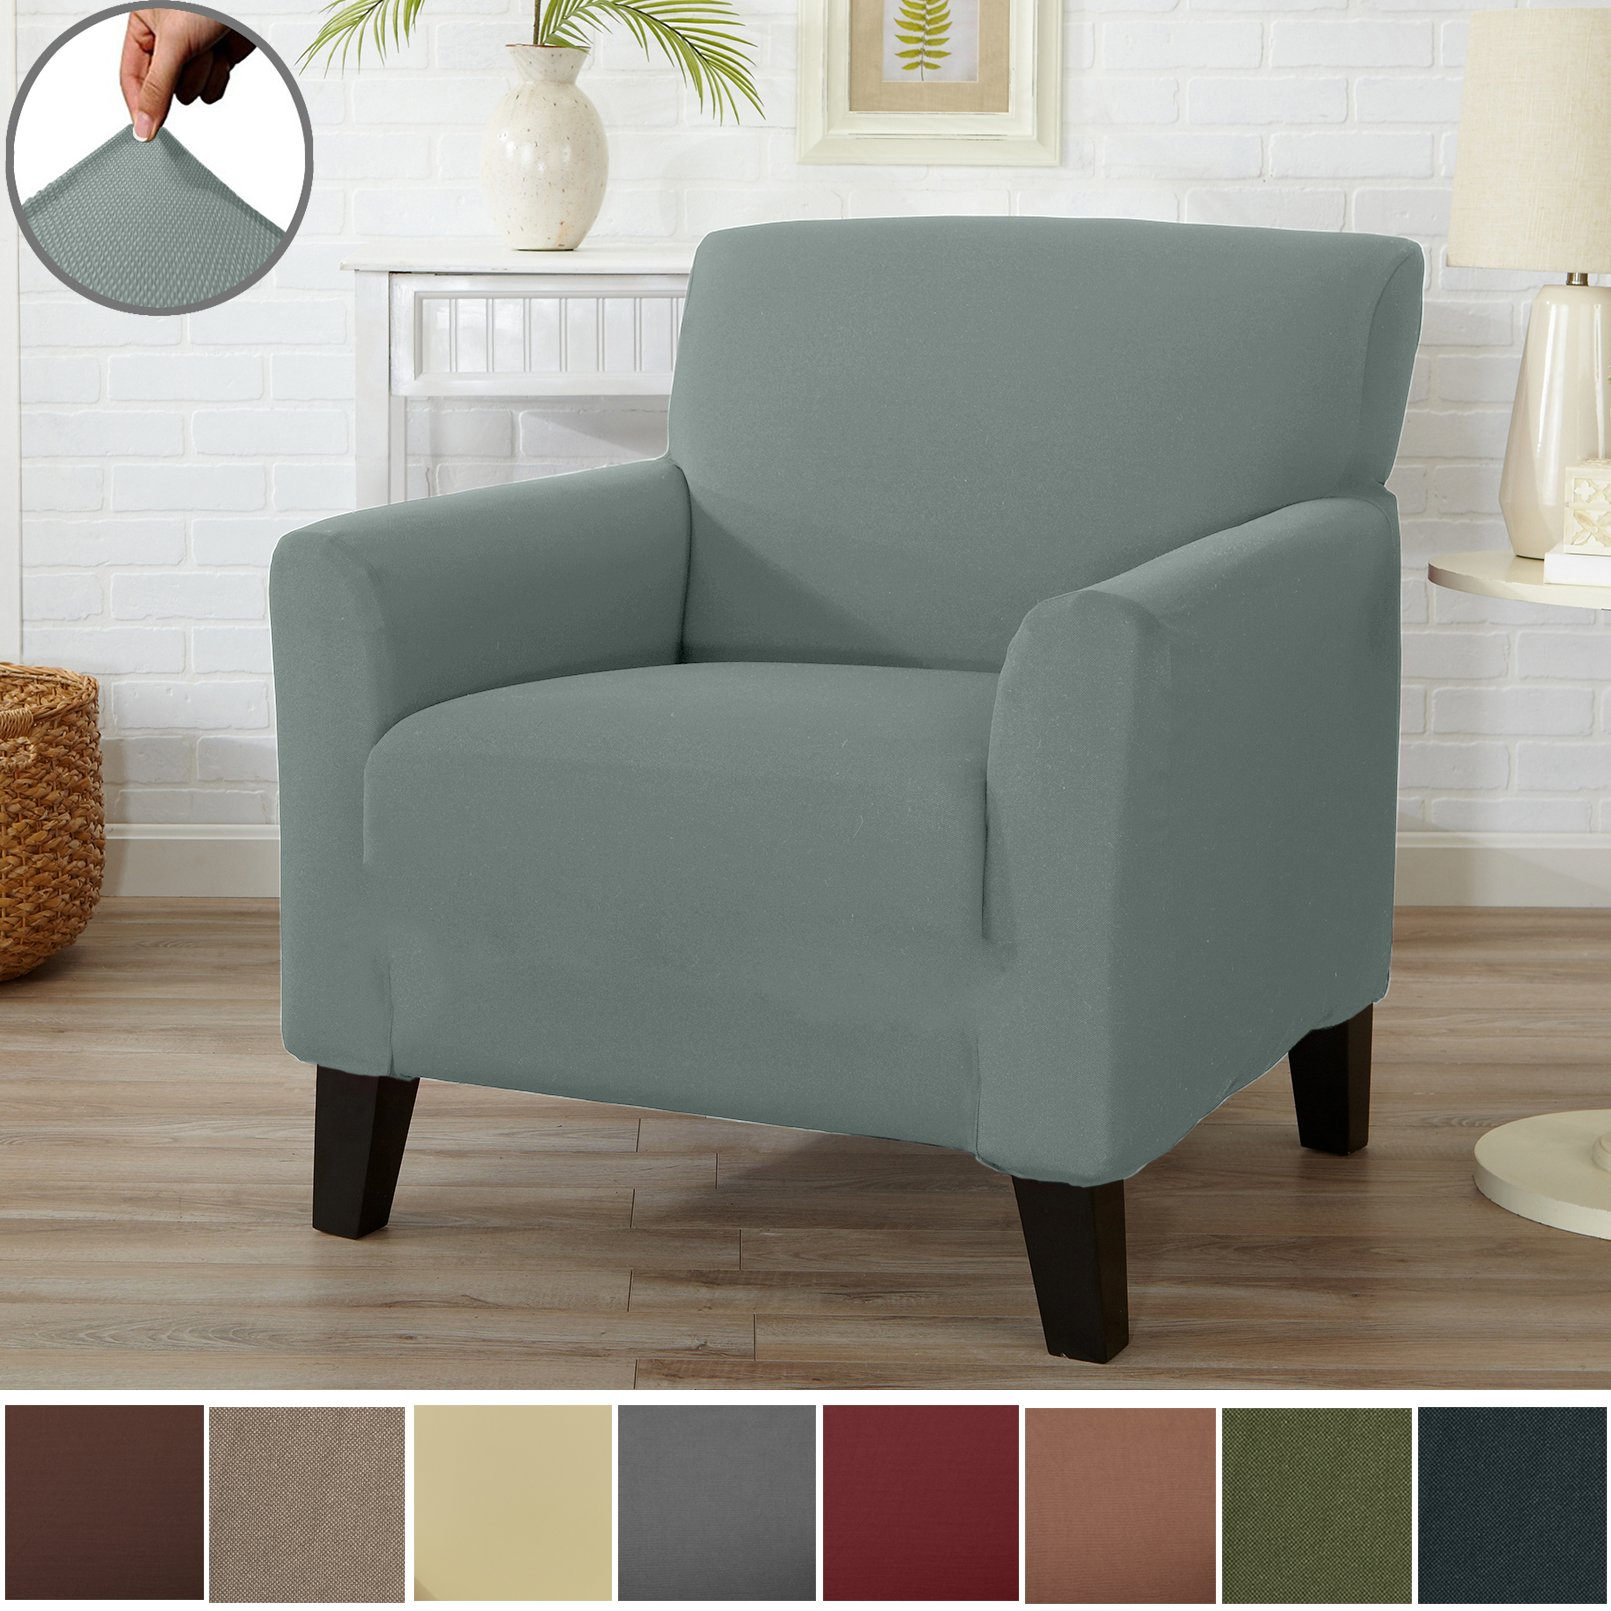 Home Fashion Designs Form Fit Stretch, Stylish Furniture Cover/Protector Featuring Lightweight Twill Fabric. Dawson Collection Basic Strapless Slipcover Brand. (Chair, Harbor Mist)